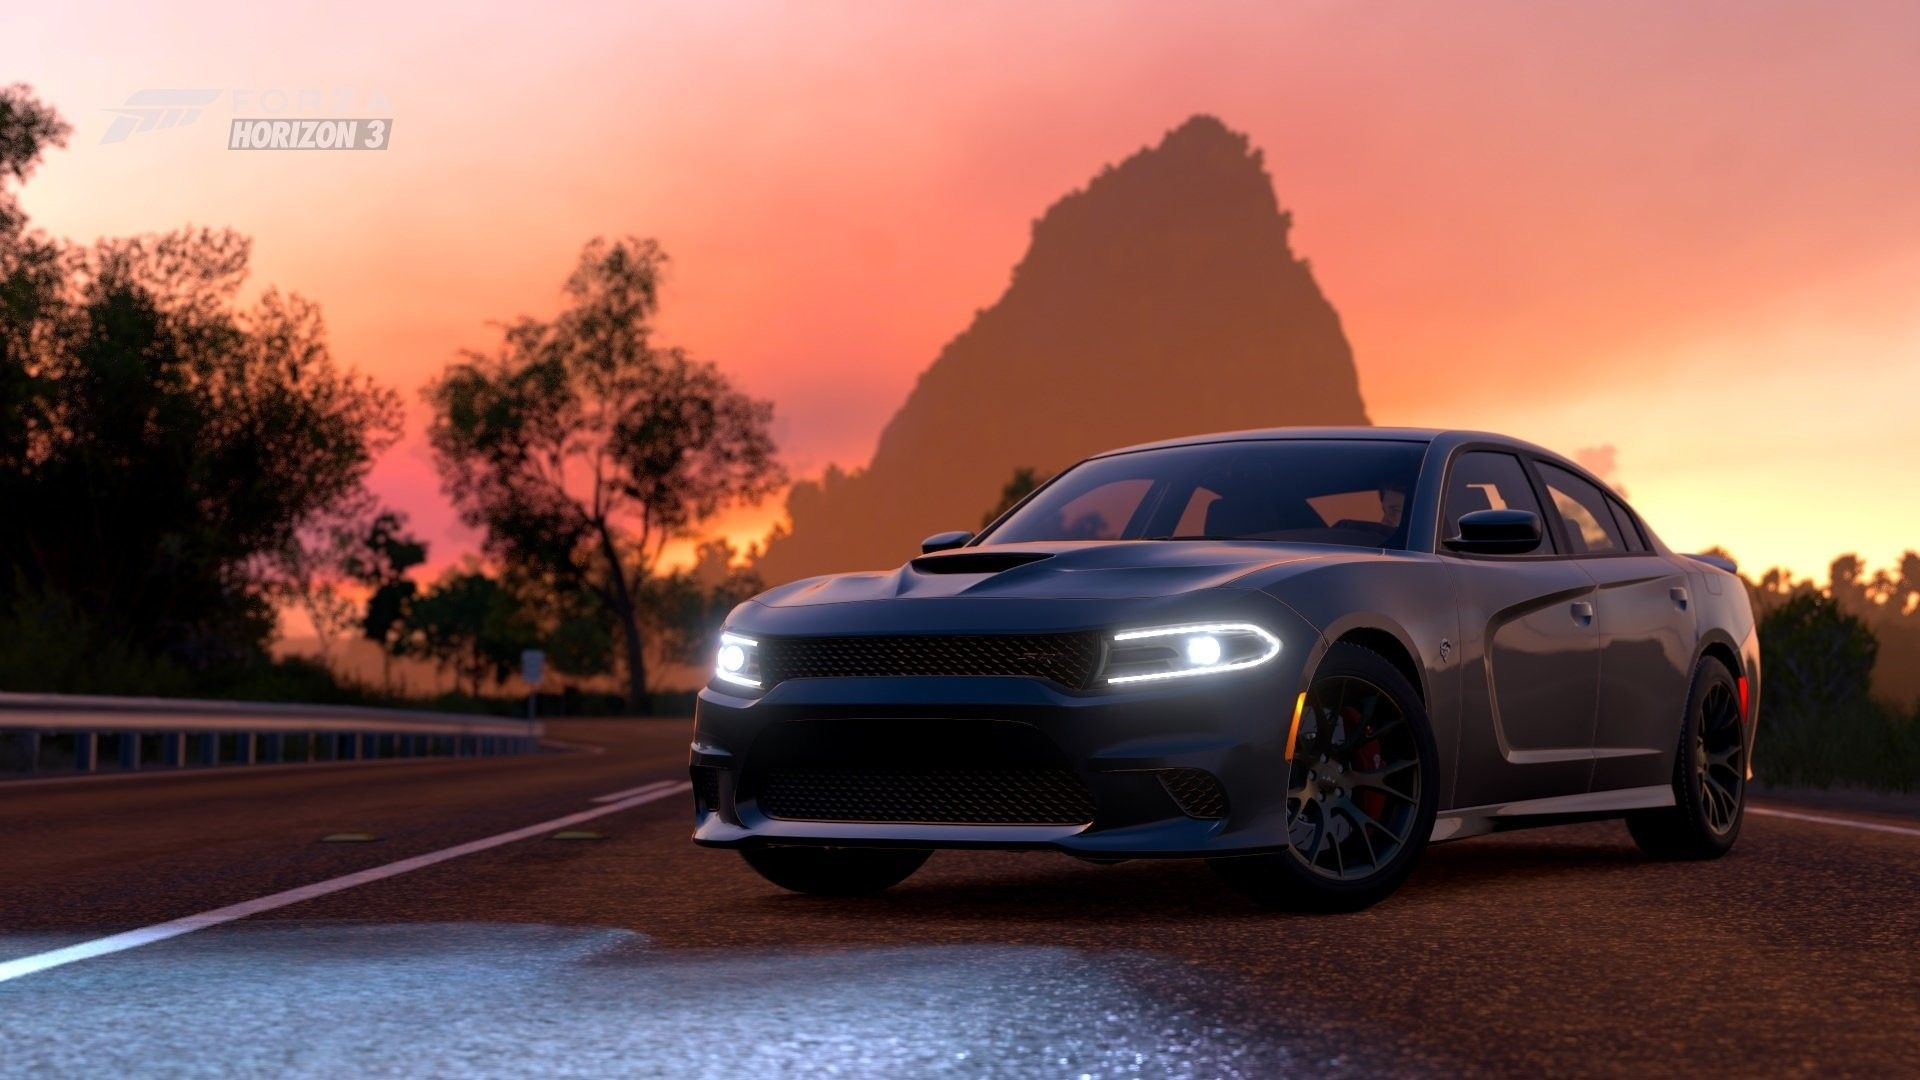 Dodge Charger Srt Wallpapers Top Free Dodge Charger Srt Backgrounds Wallpaperaccess